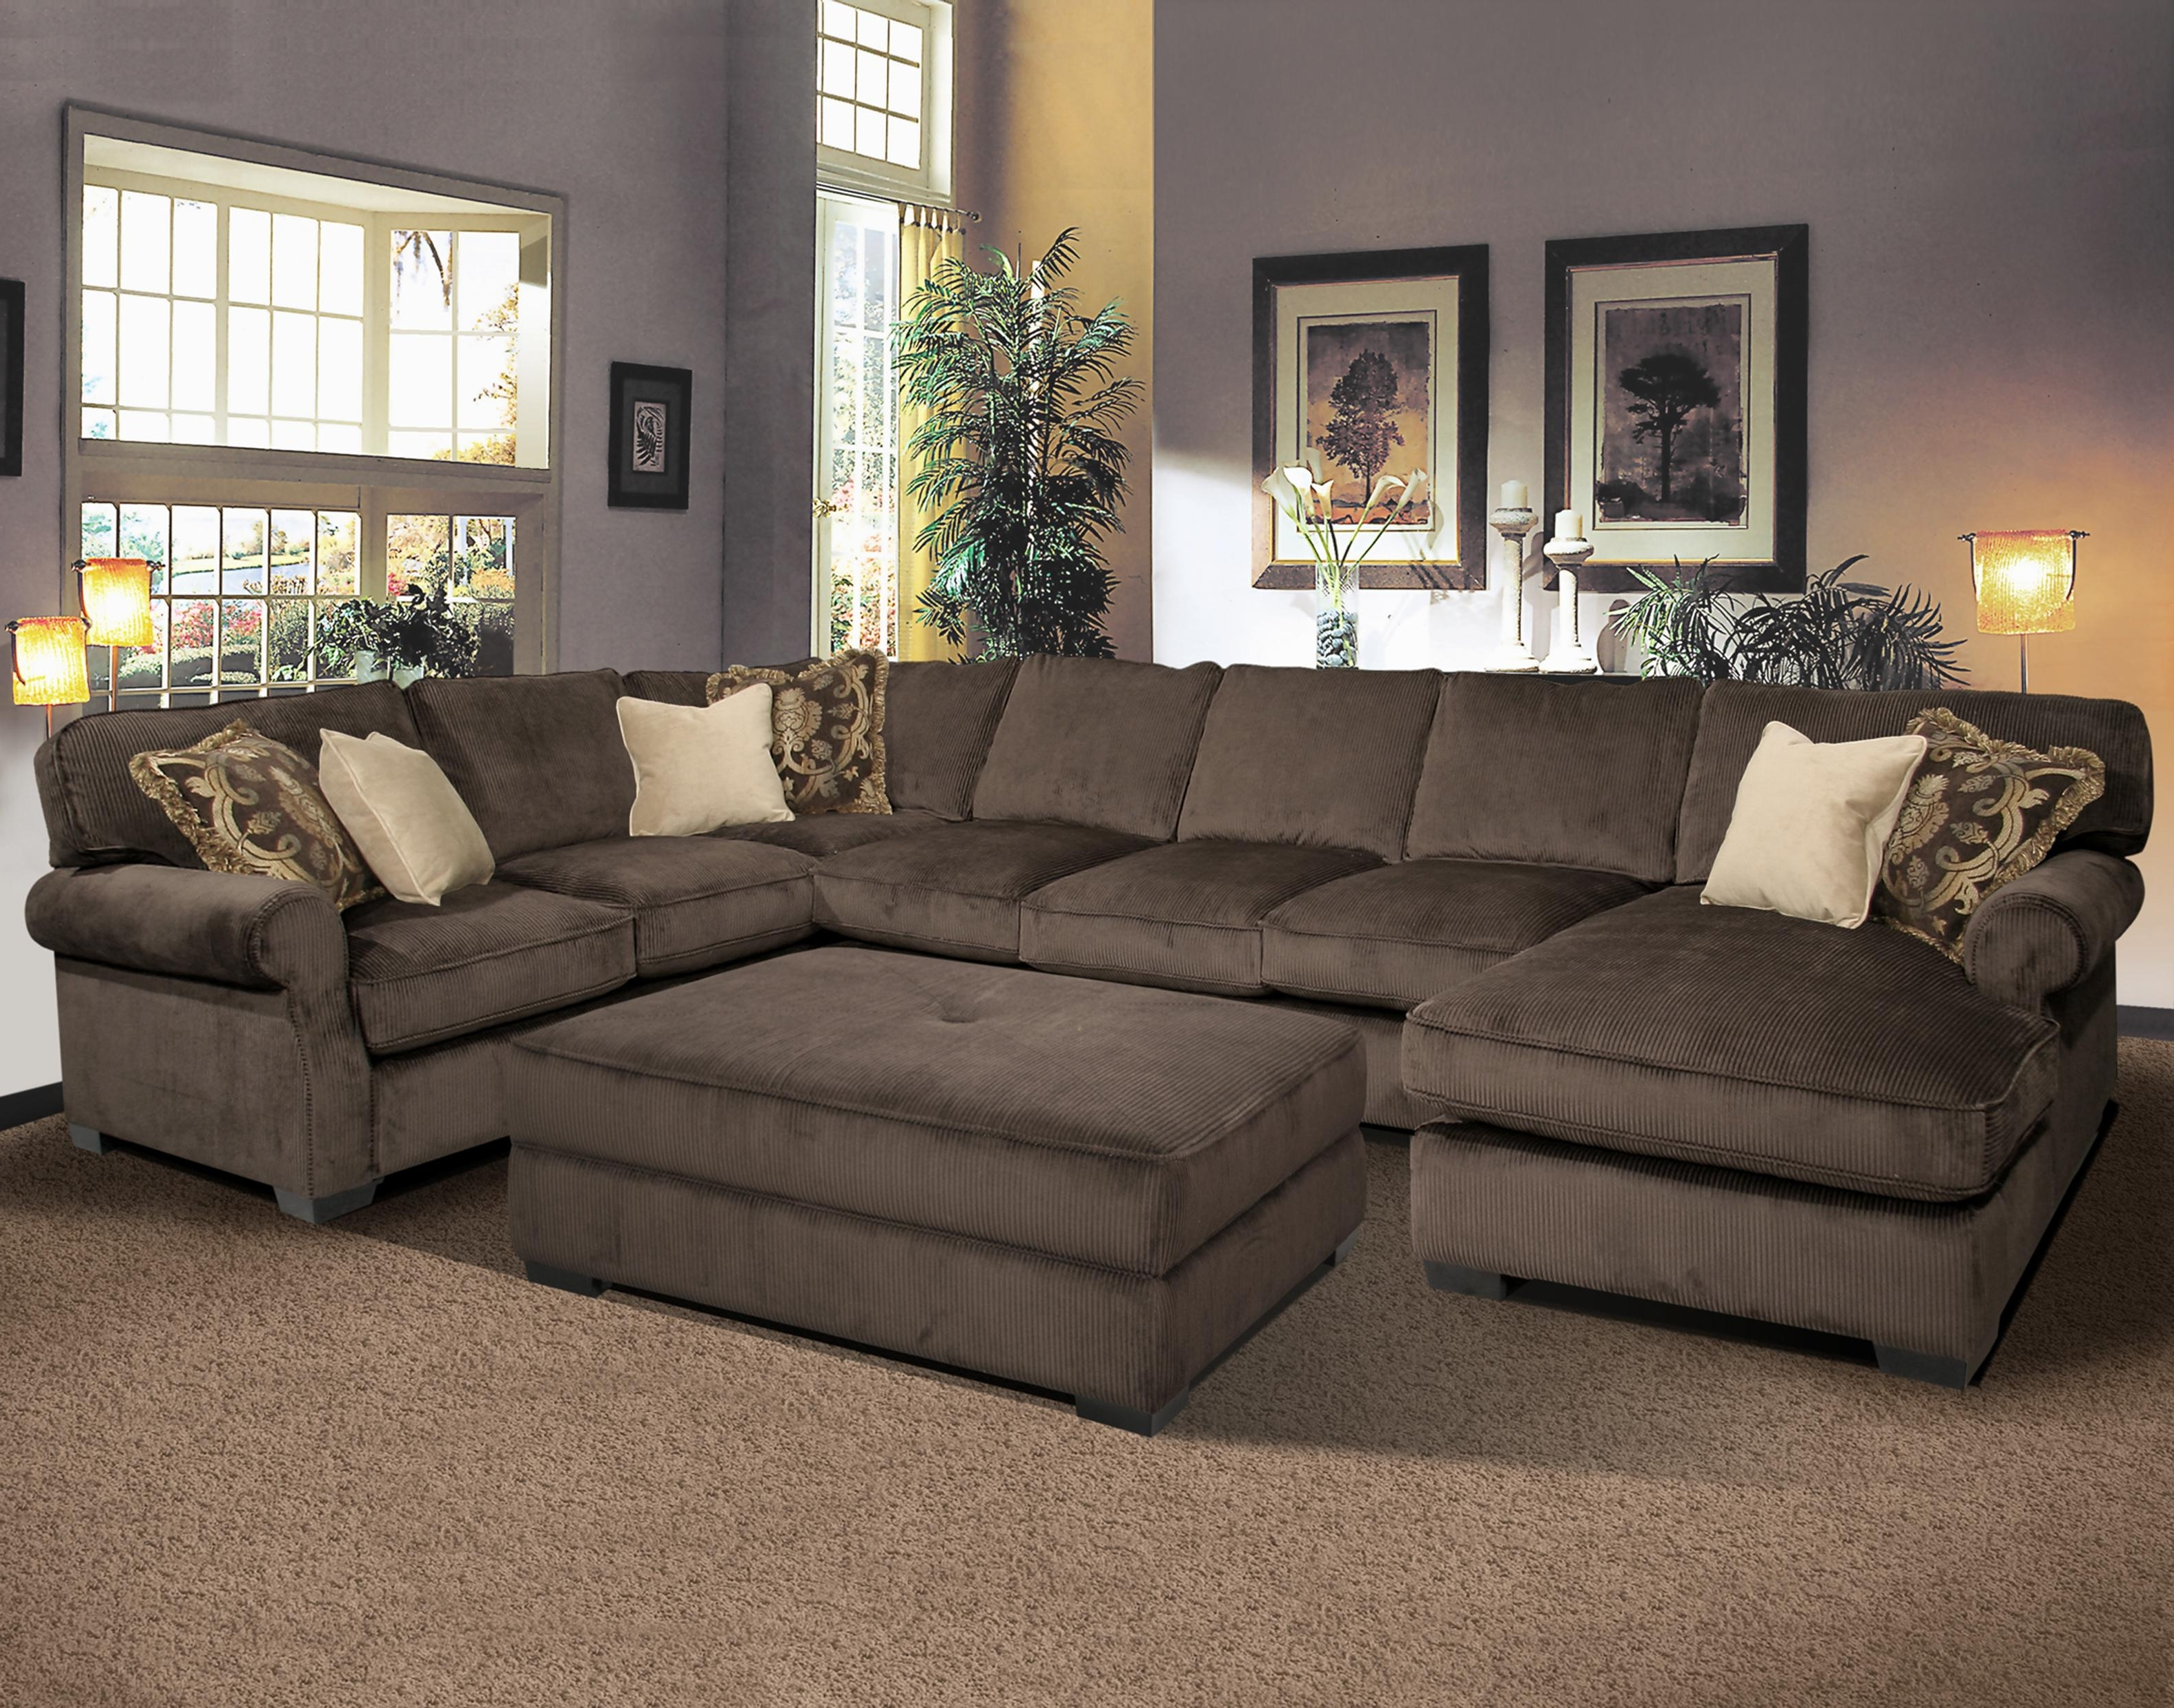 Most Popular Sofa : L Shaped Sectional Sectional With Pull Out Bed Sofa Set Regarding Nz Sectional Sofas (Gallery 14 of 20)